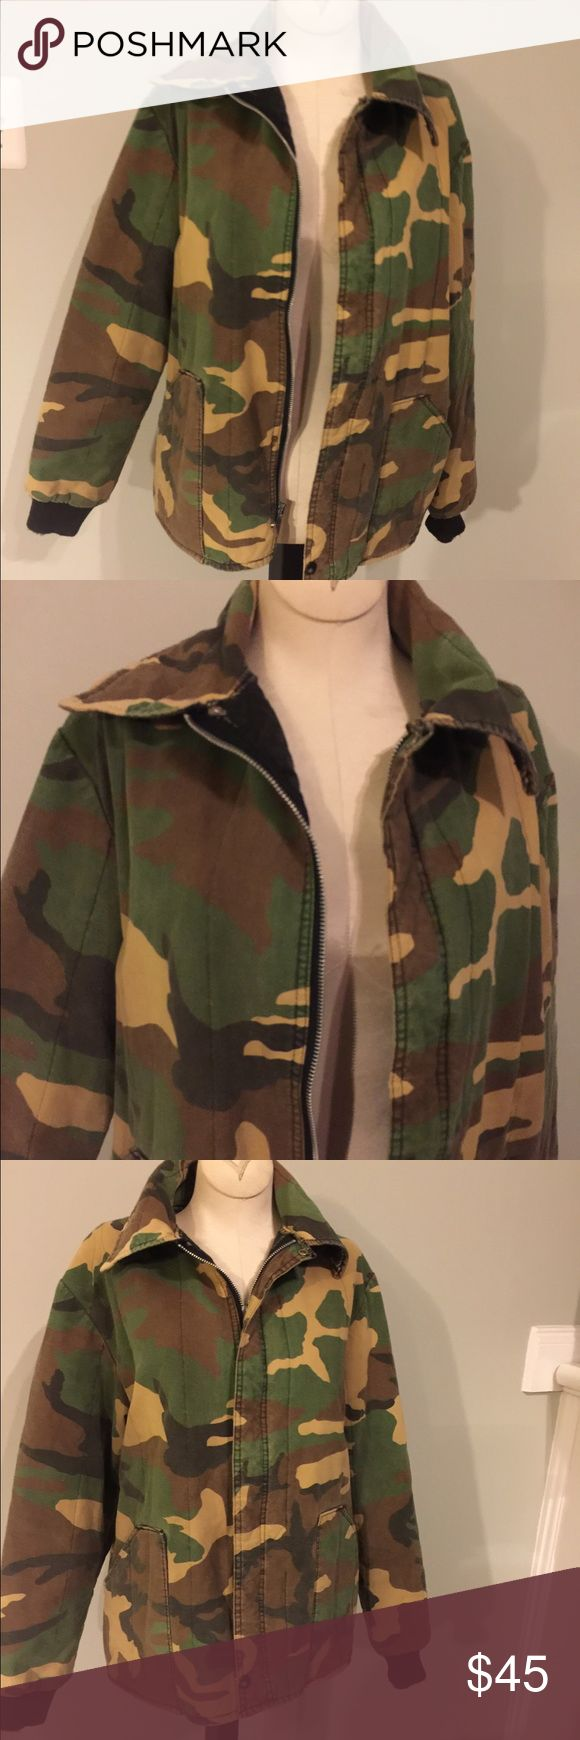 Ladies camouflage Jacket Nice looking Camouflage women's jacket. camouflage pattern with a zip front and Quilted lining and large pockets.In Nice used condition. woodfield  Jackets & Coats